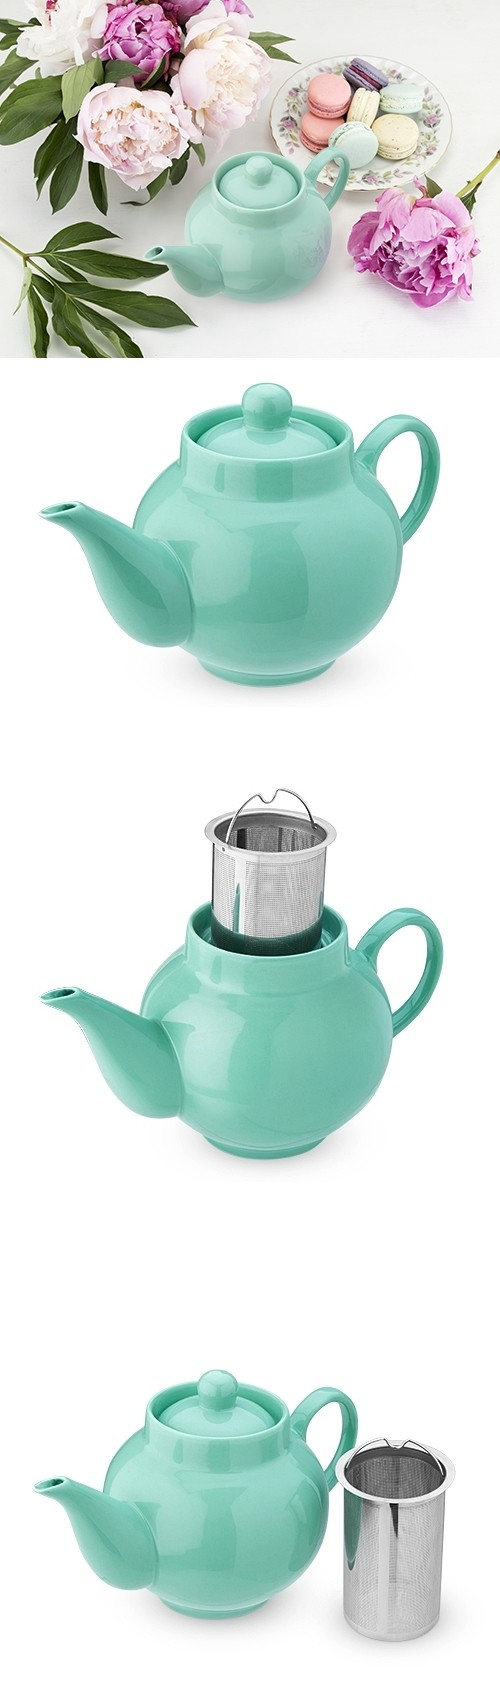 Regan™ Green Ceramic Teapot & Infuser by Pinky Up®